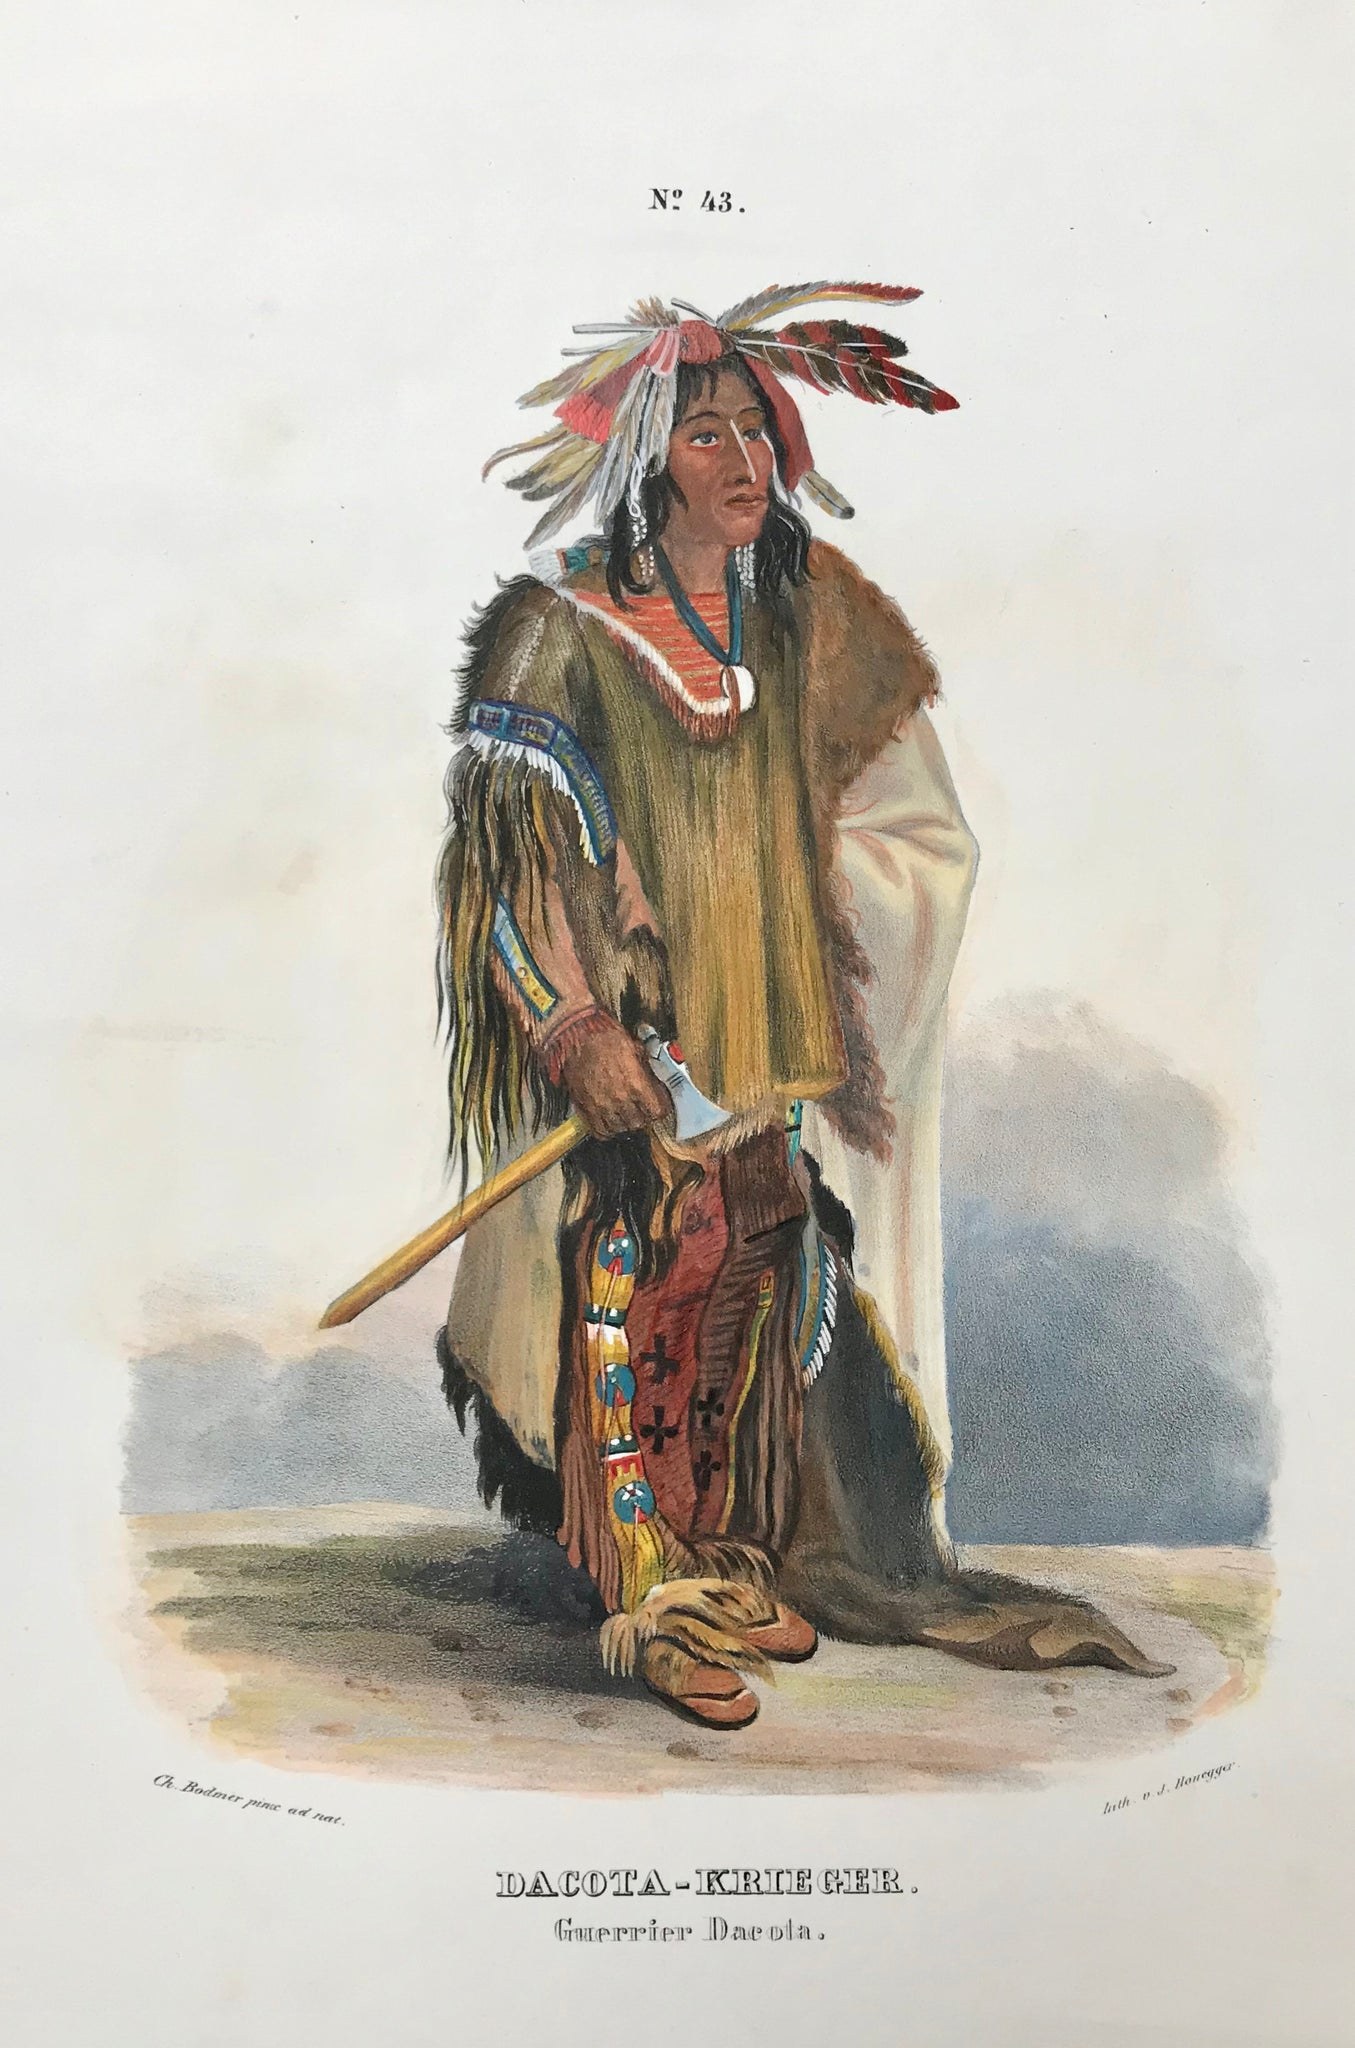 """Dacota-Krieger - Guerrier Dacota""  The lithographs of plains Indians and their culture were printed in  ""Naturgeschichte und Abbildungen des Menschen und der verschiedenen Rassen und Staemme nach den neuesten Entdeckungen und vorzueglichsten OriginalenÉ""  by Heinrich Rudolf Schinz (1777-1861).  These lithographs of Native Americans were done by  the lithographer J. Honegger  after  Johann Carl Bodmer (1809-1893), who had traveled in America together with  Prince Maximilian Alexander Philipp zu Wied-Neuwied"